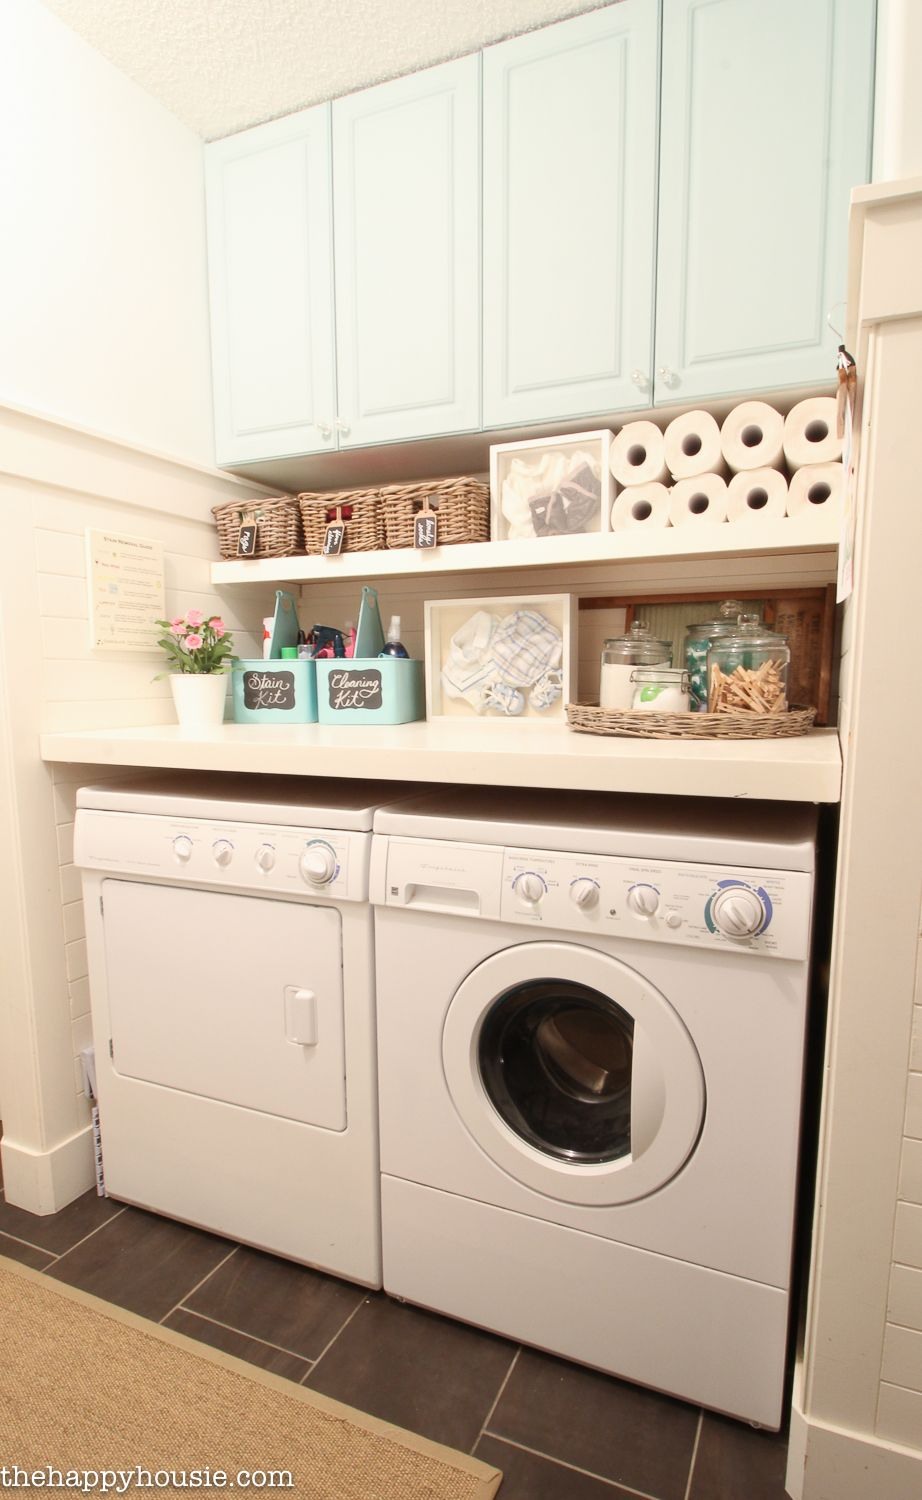 How To Completely Organize Your Laundry Room In Three Easy Steps The Hy Housie